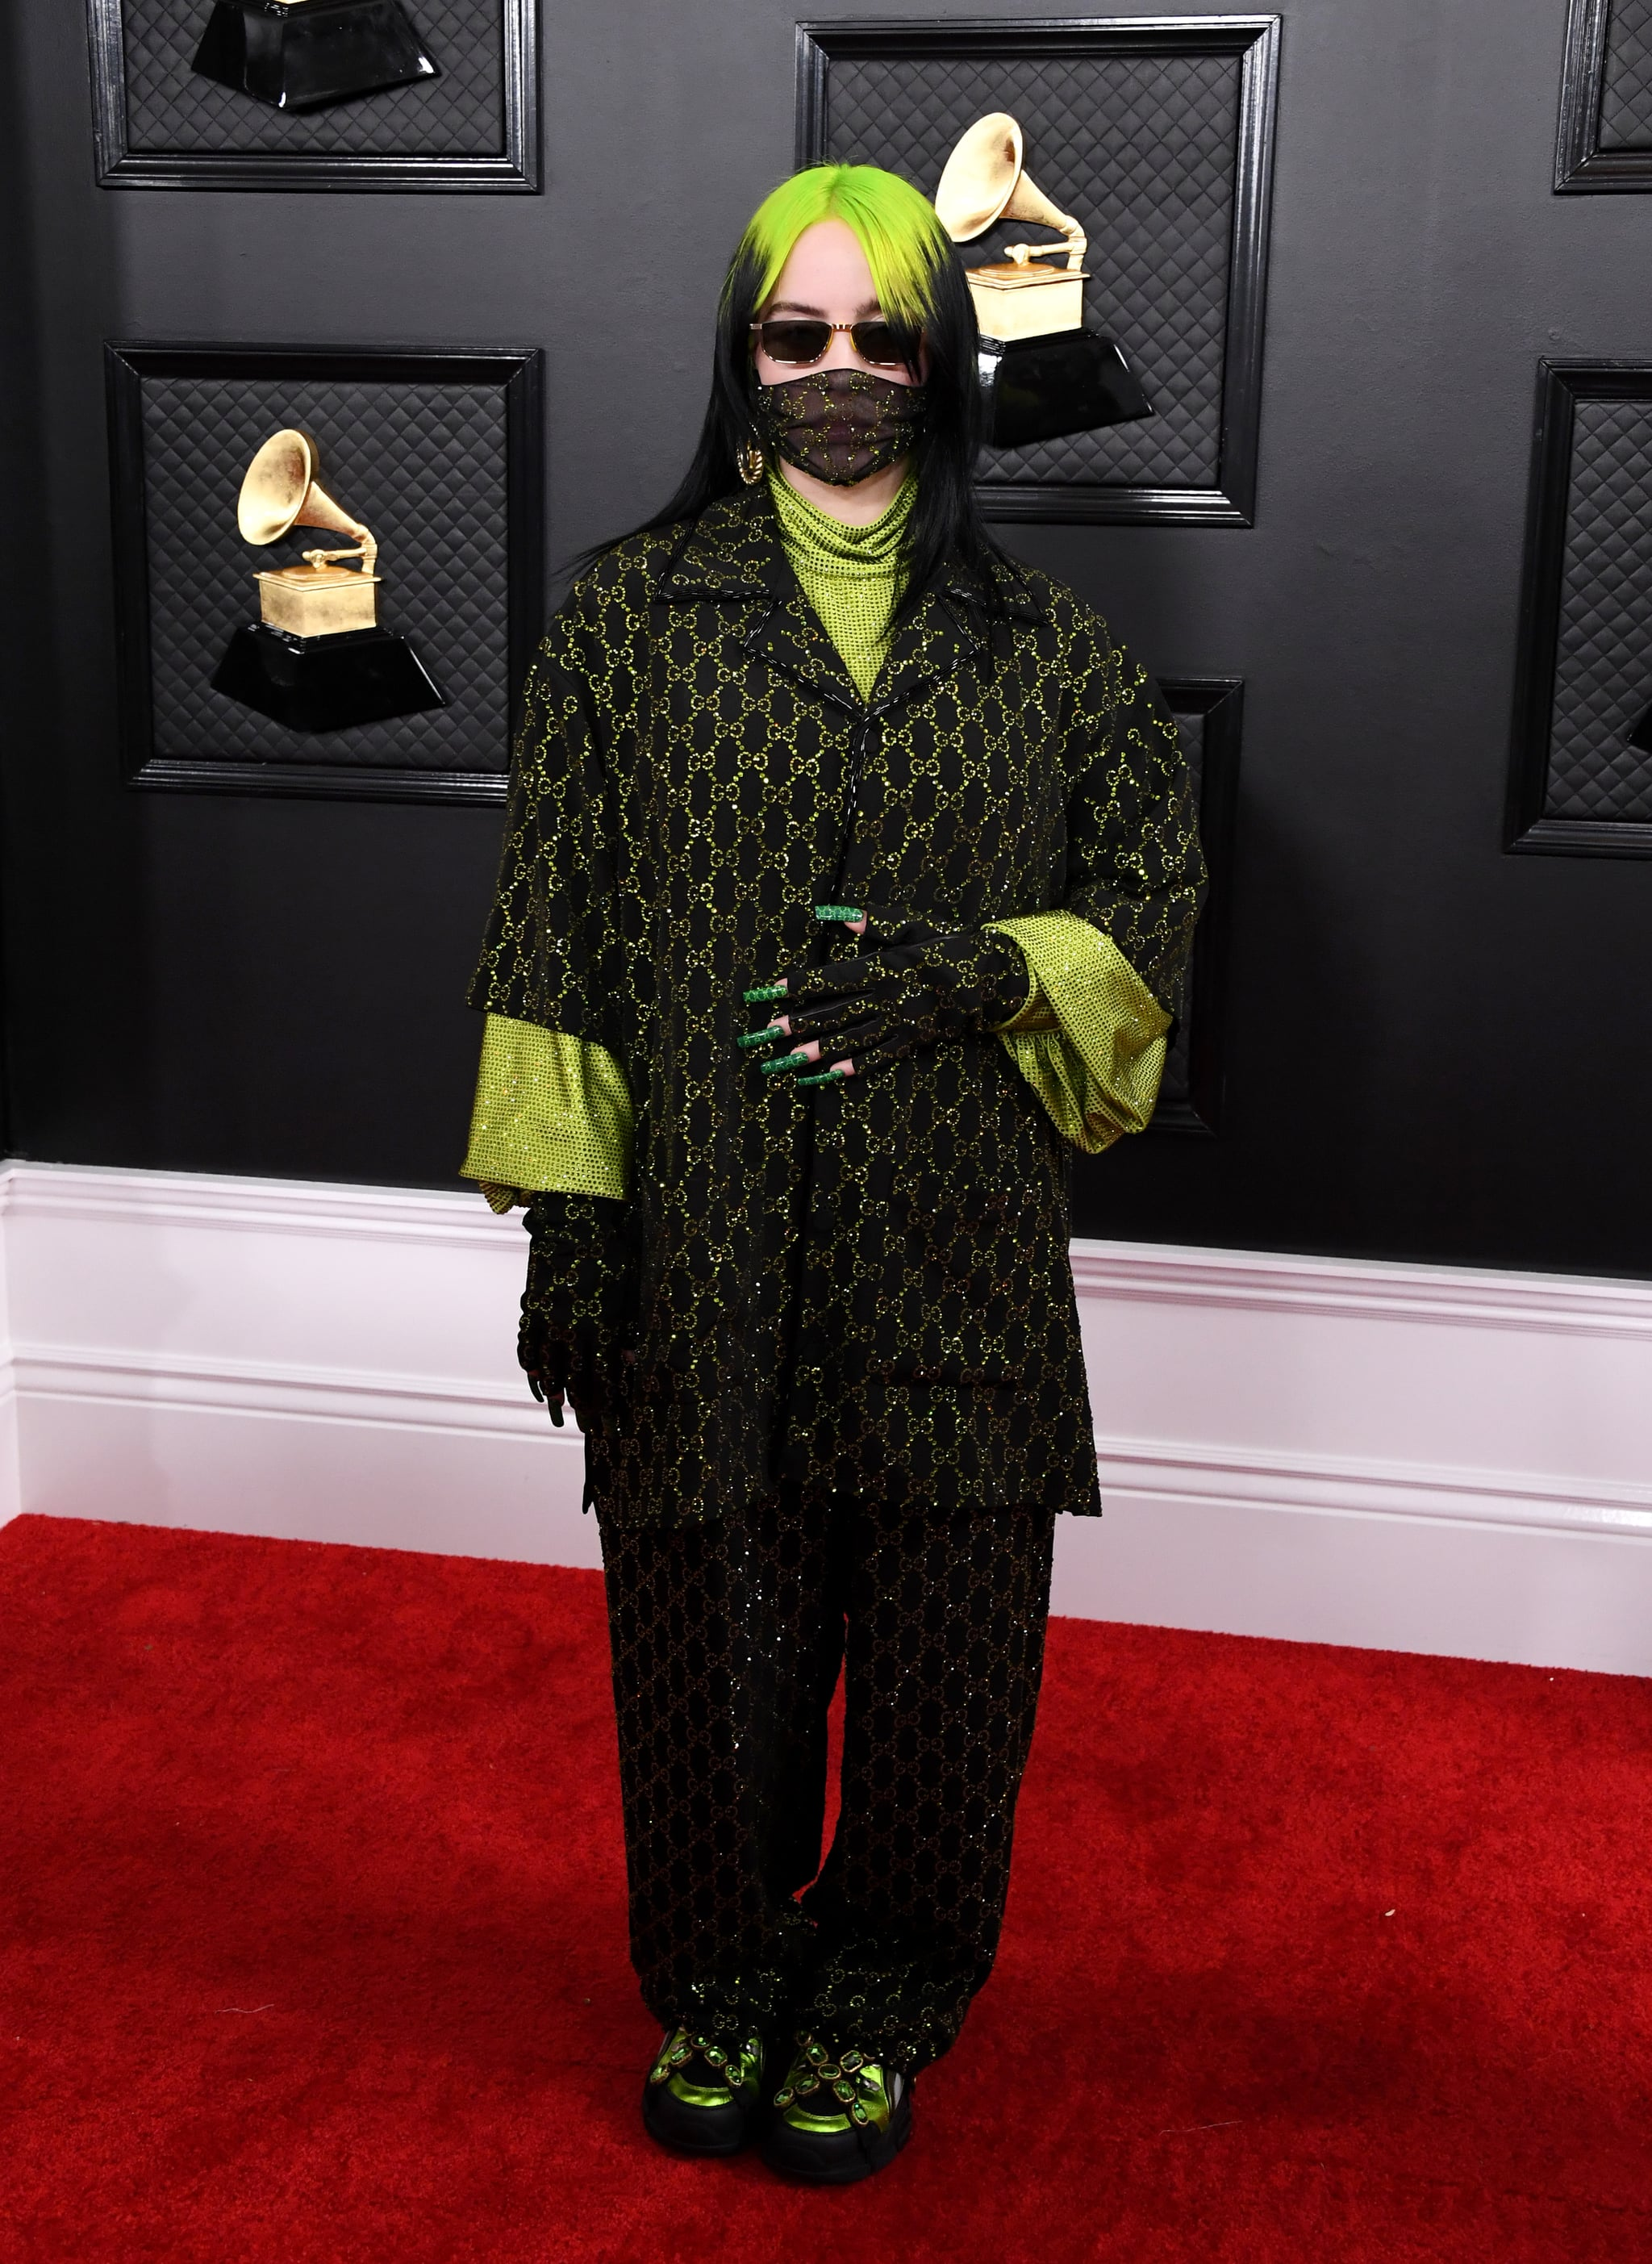 Beard Halloween Costume 2020 Billie Eilish at the 2020 Grammys | We Have Chills! These Are